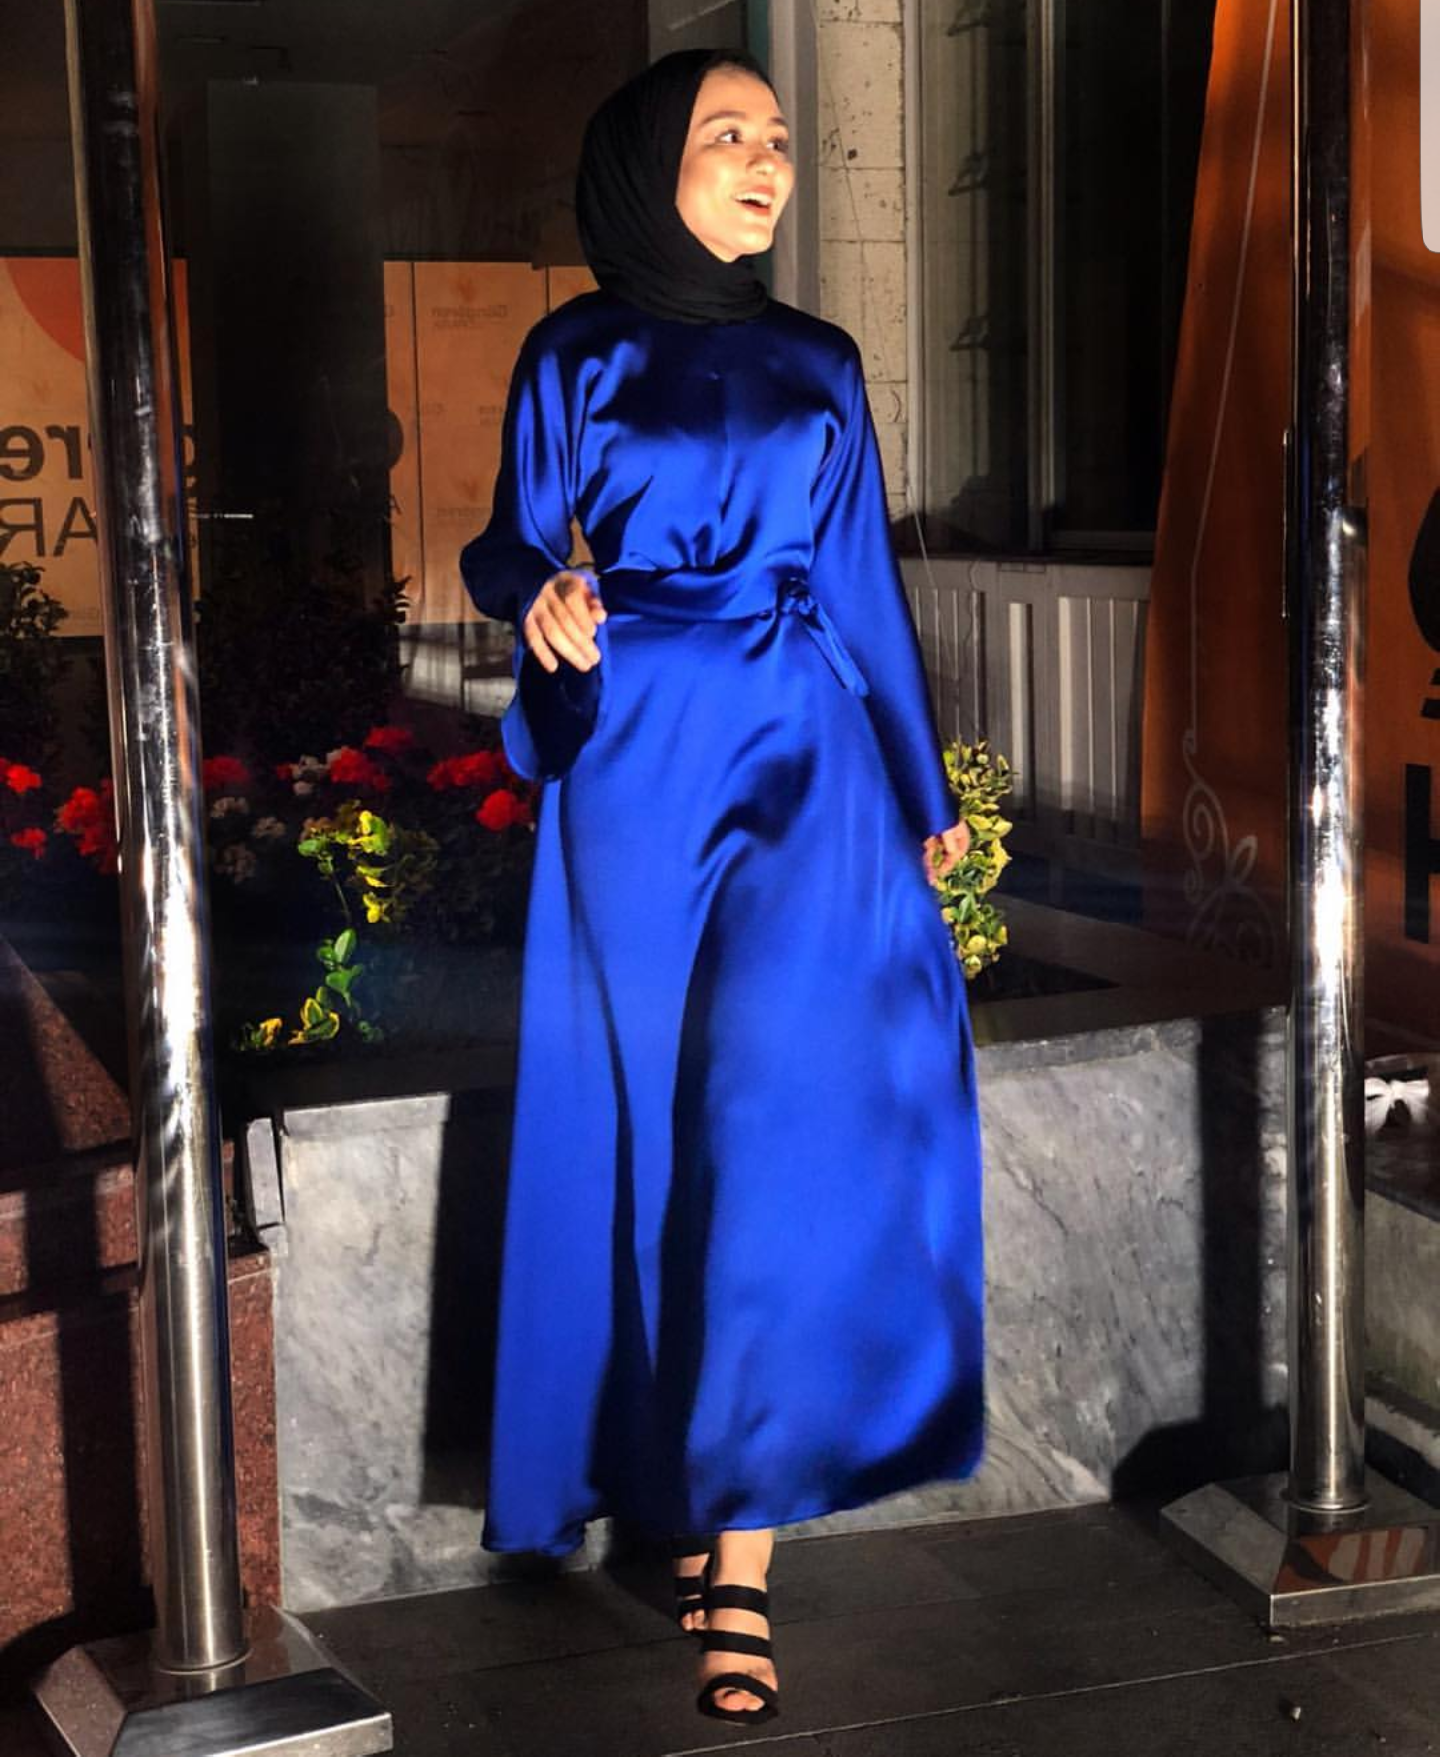 Modest Fashion Long Dresses That Will Make You Look Effortlessly Classy